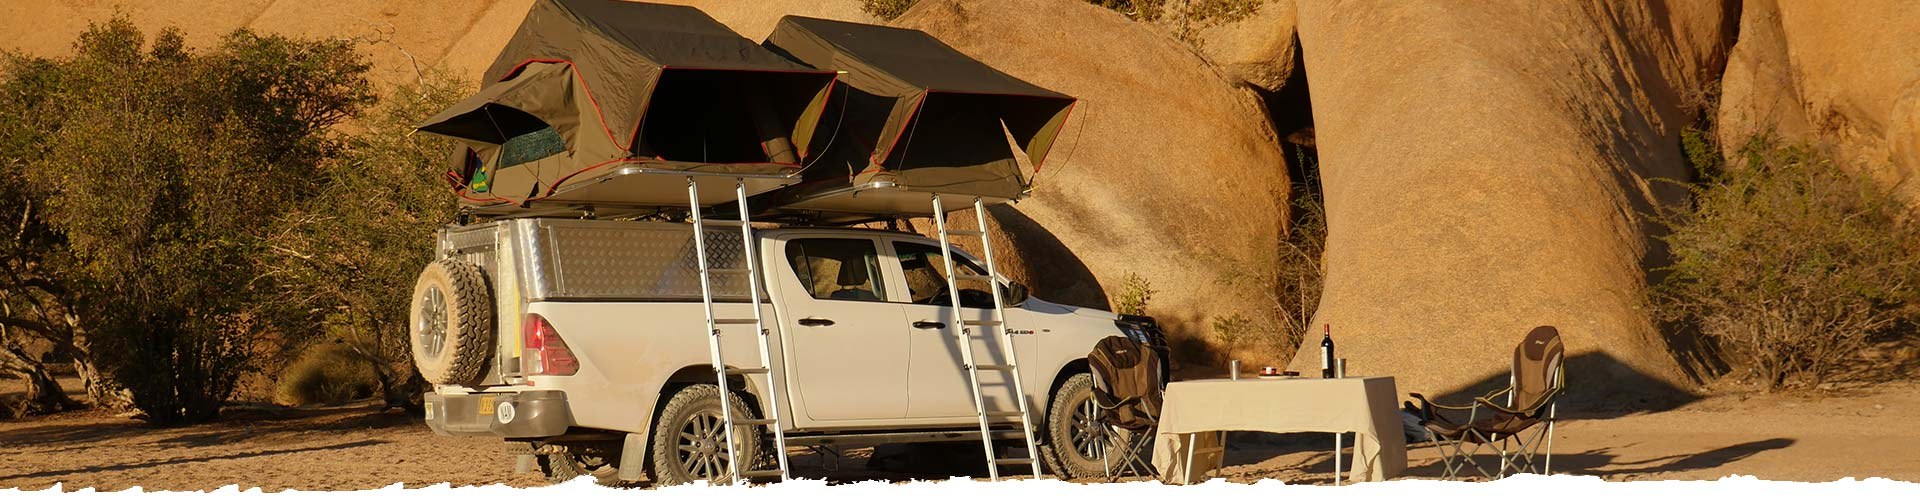 Autohuur-Namibie-Toyota-Hilux-2.5TD-4x4-Double-Cab-Camping-4pax-slider